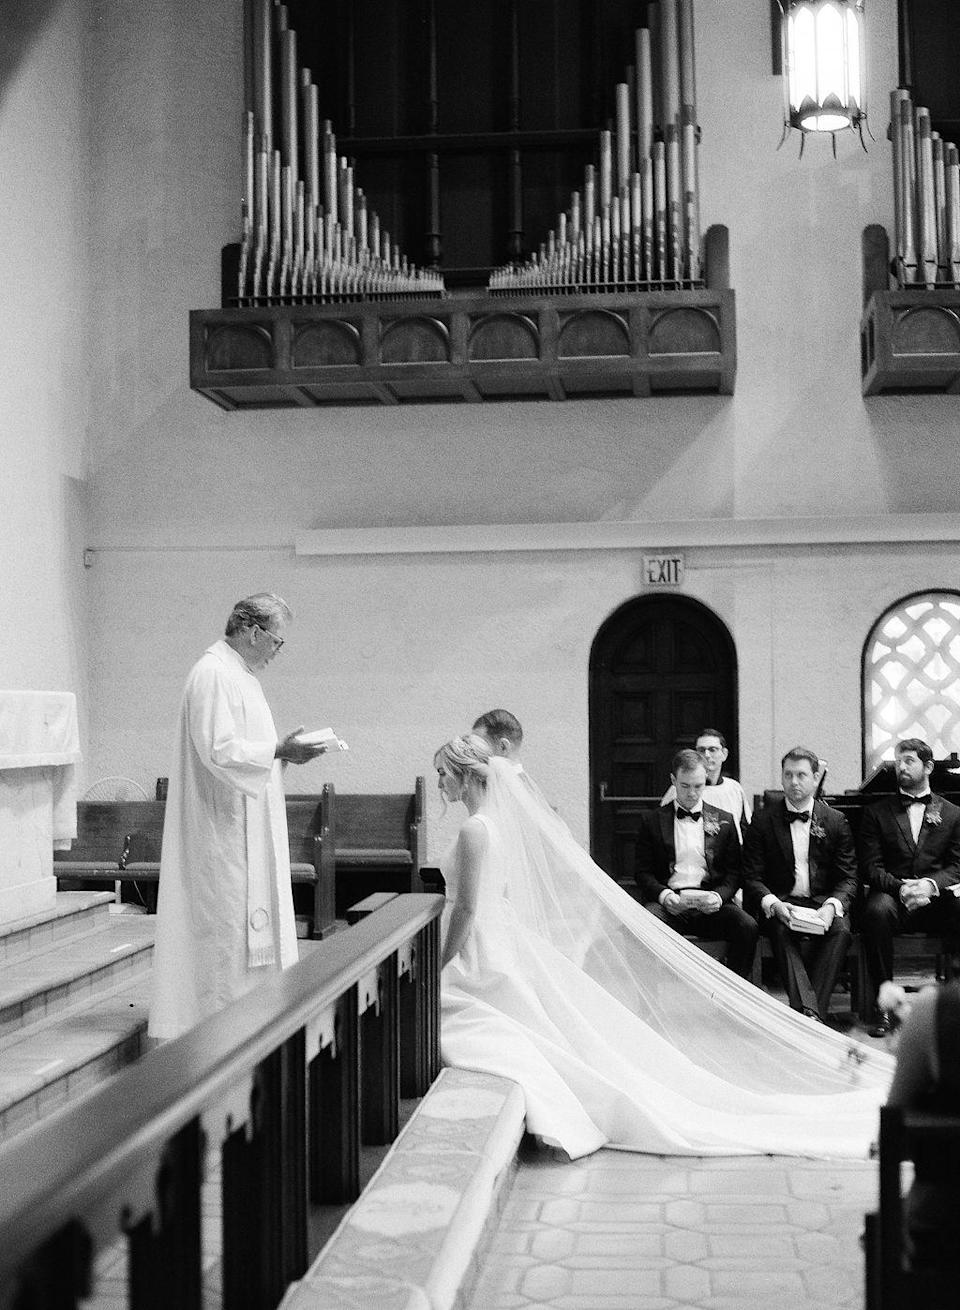 <p>The couple had two attendants read Colossians 3:12-17 and John 15:9-12 during the ceremony. As part of the ceremony, the couple took a private Eucharist with their parents in the small chapel.</p>